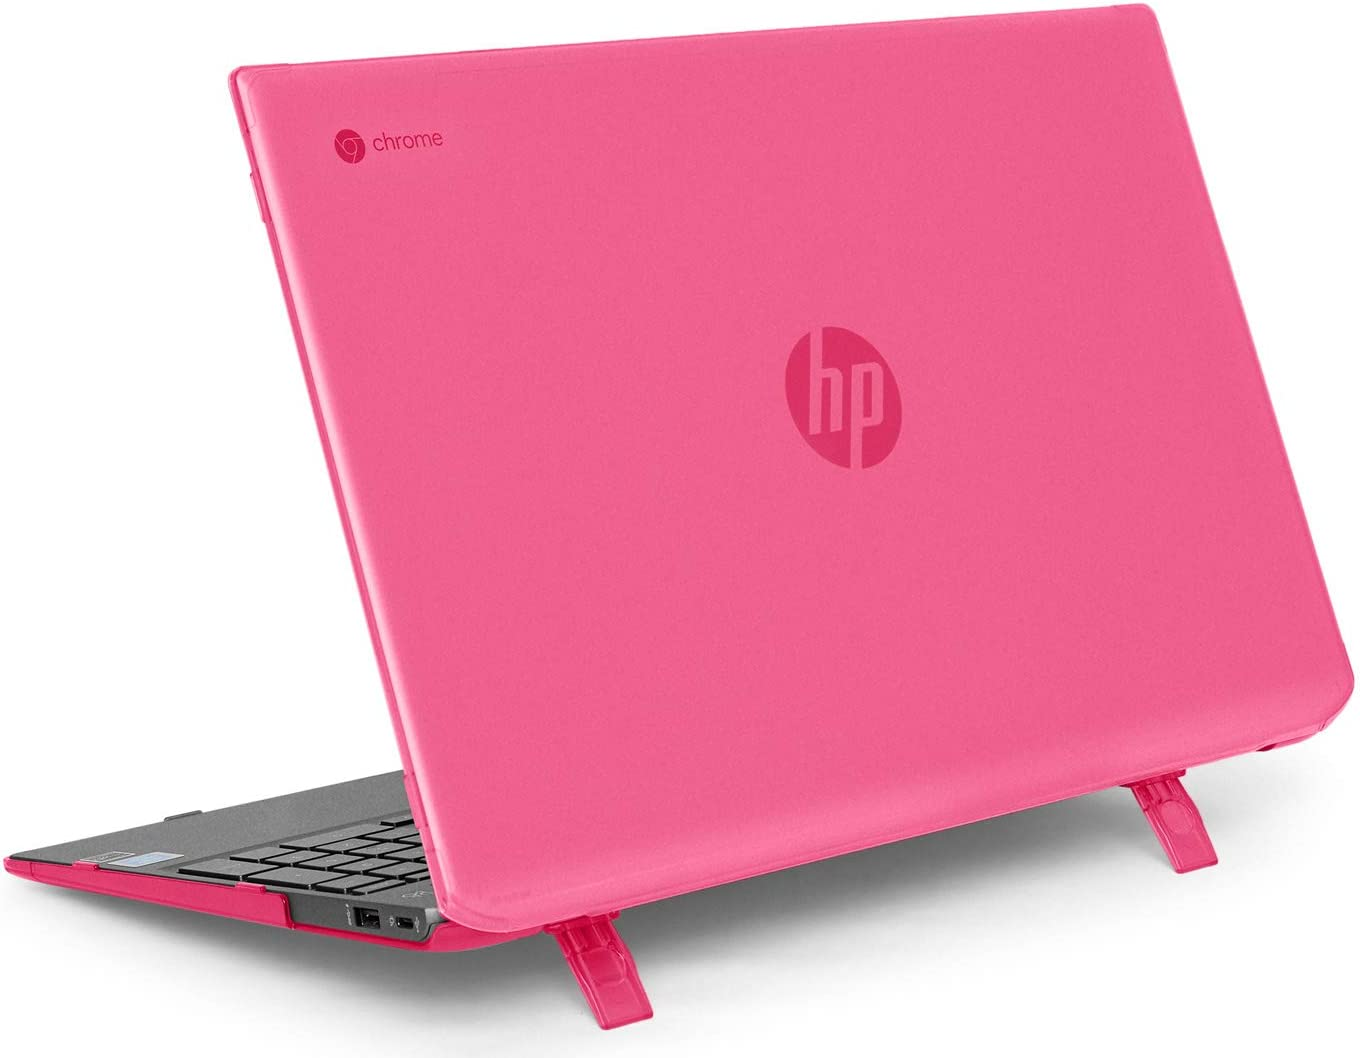 "mCover Hard Shell Case for Late-2019 15.6"" HP Chromebook 15-DExxxx Series (NOT Compatible with Smaller HP C14 / C13 / C11 Series) laptops (HP C15-DE Pink)"